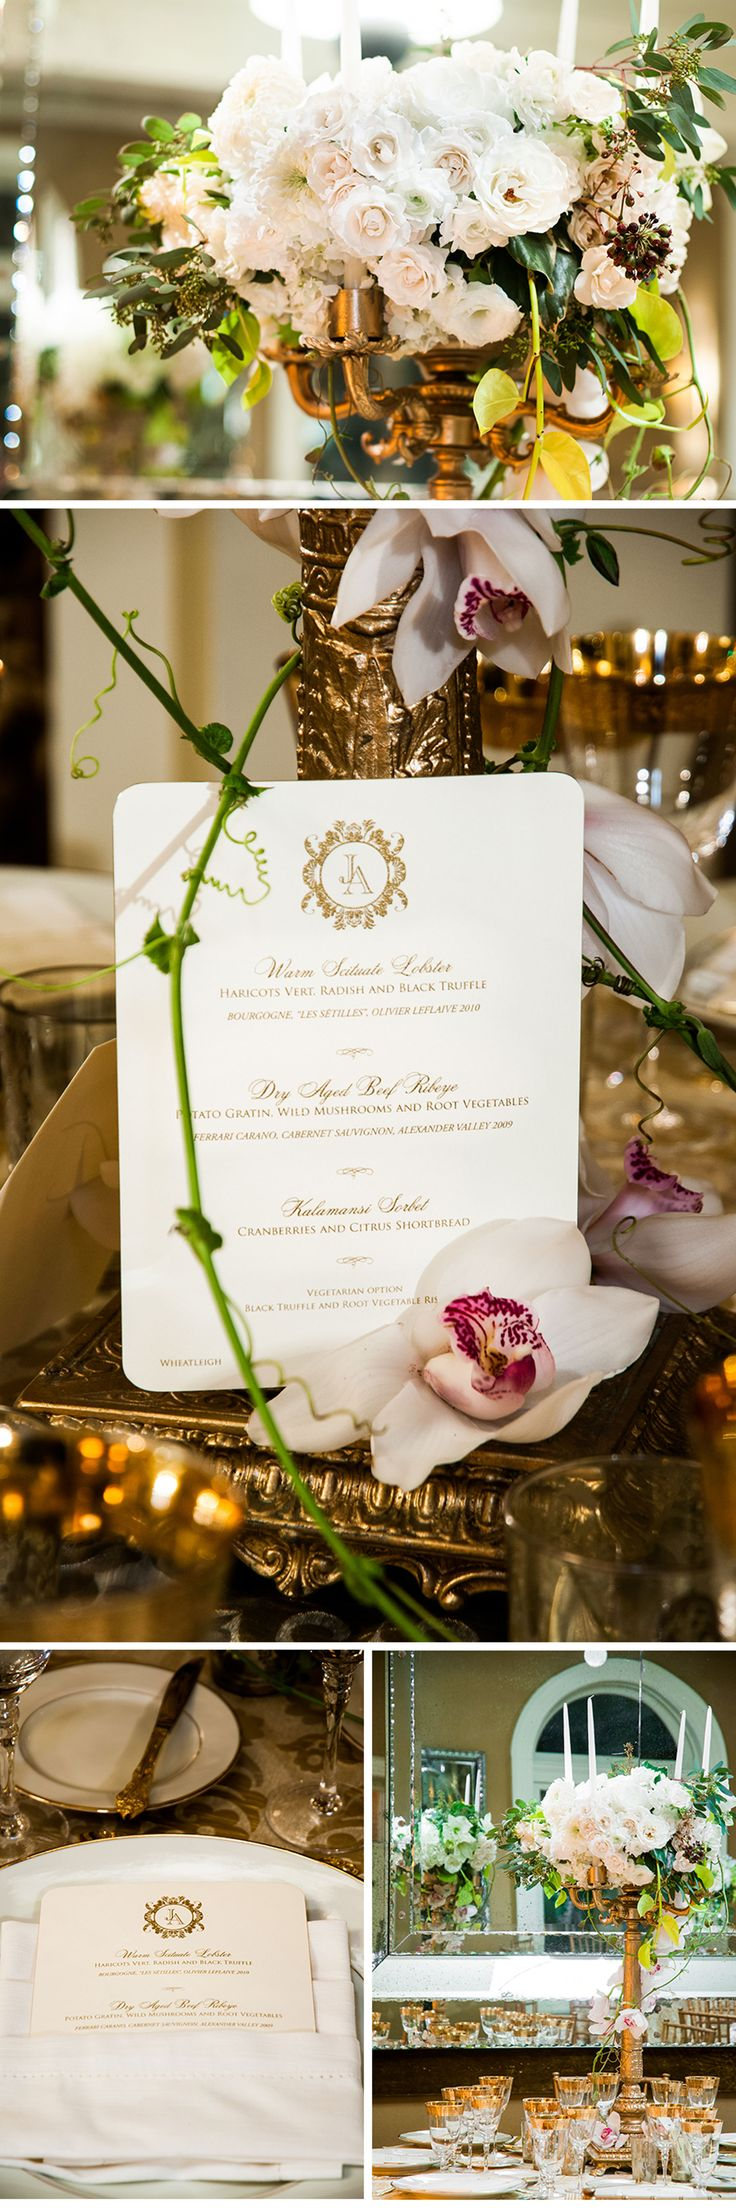 Luxurious Winter Wedding. As seen in Ceci Style. #wedding #table #winter #gold #green #tabletop